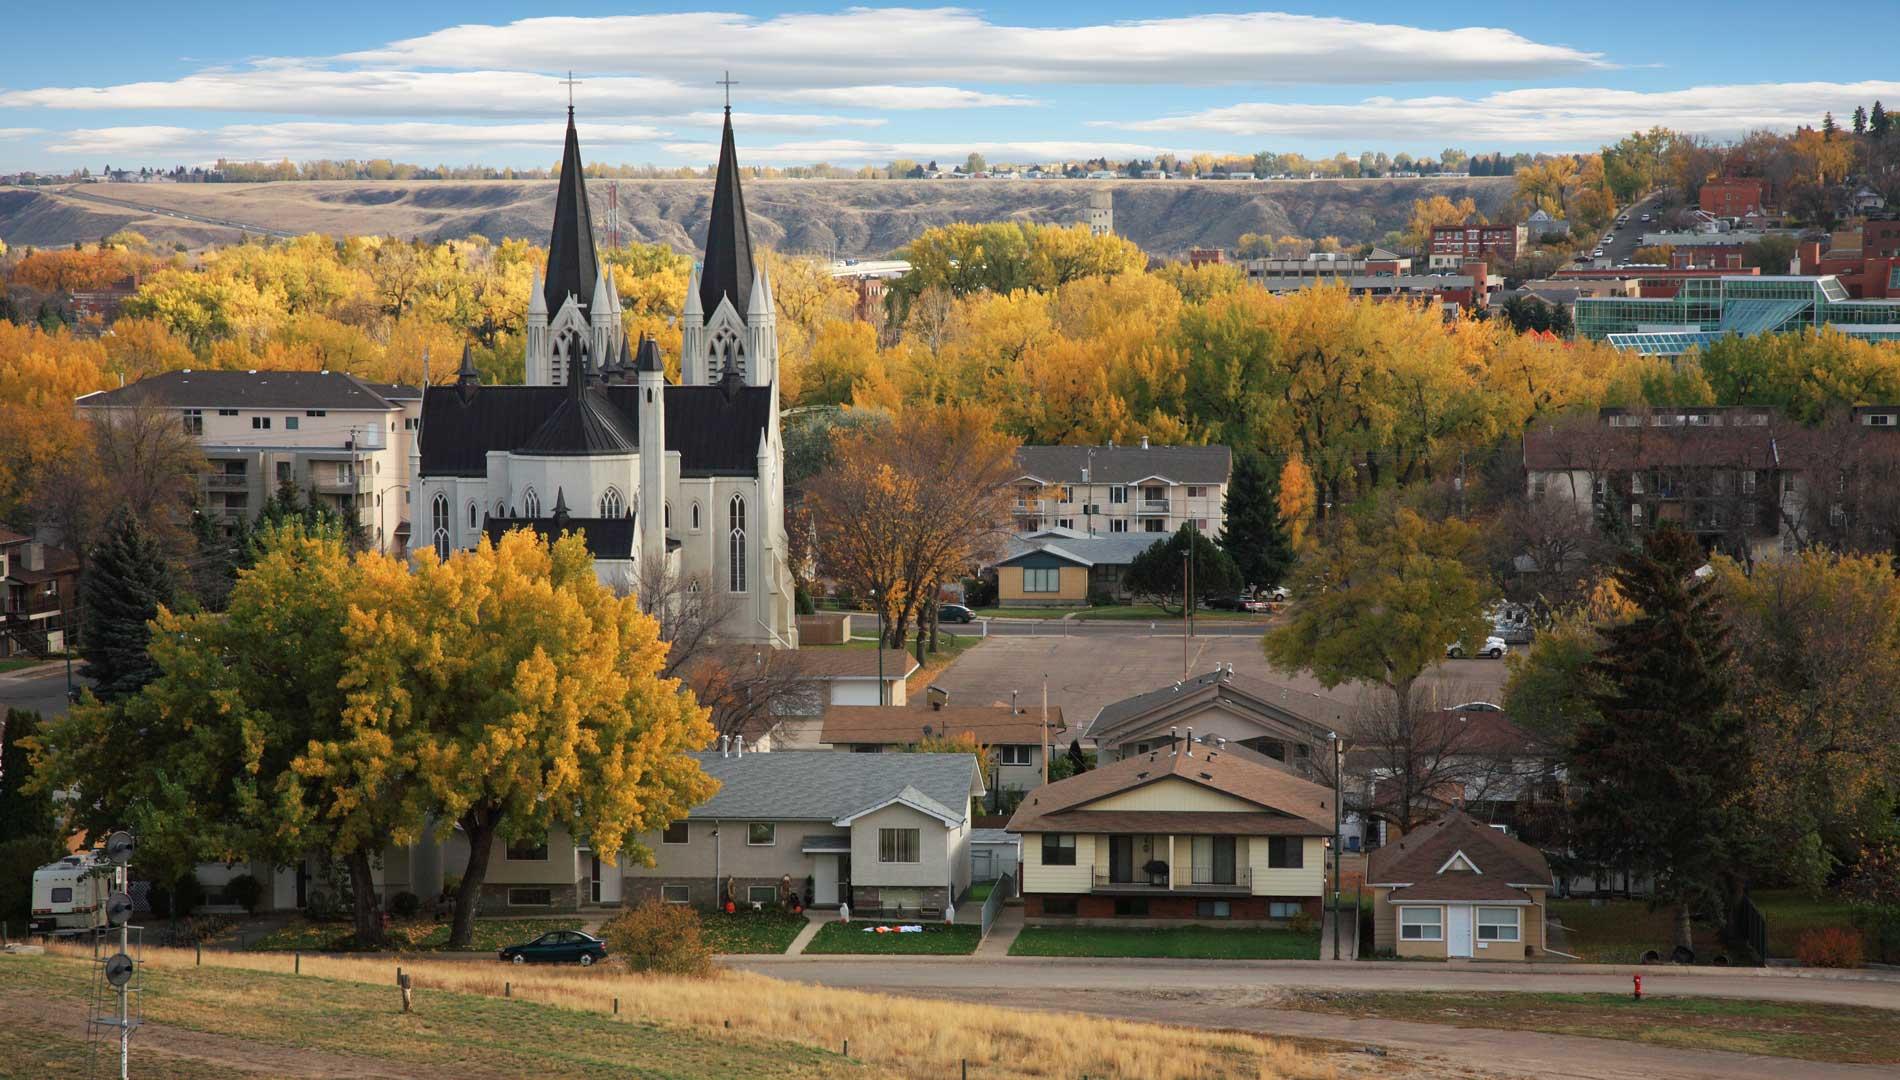 town photo of Medicine Hat in Alberta